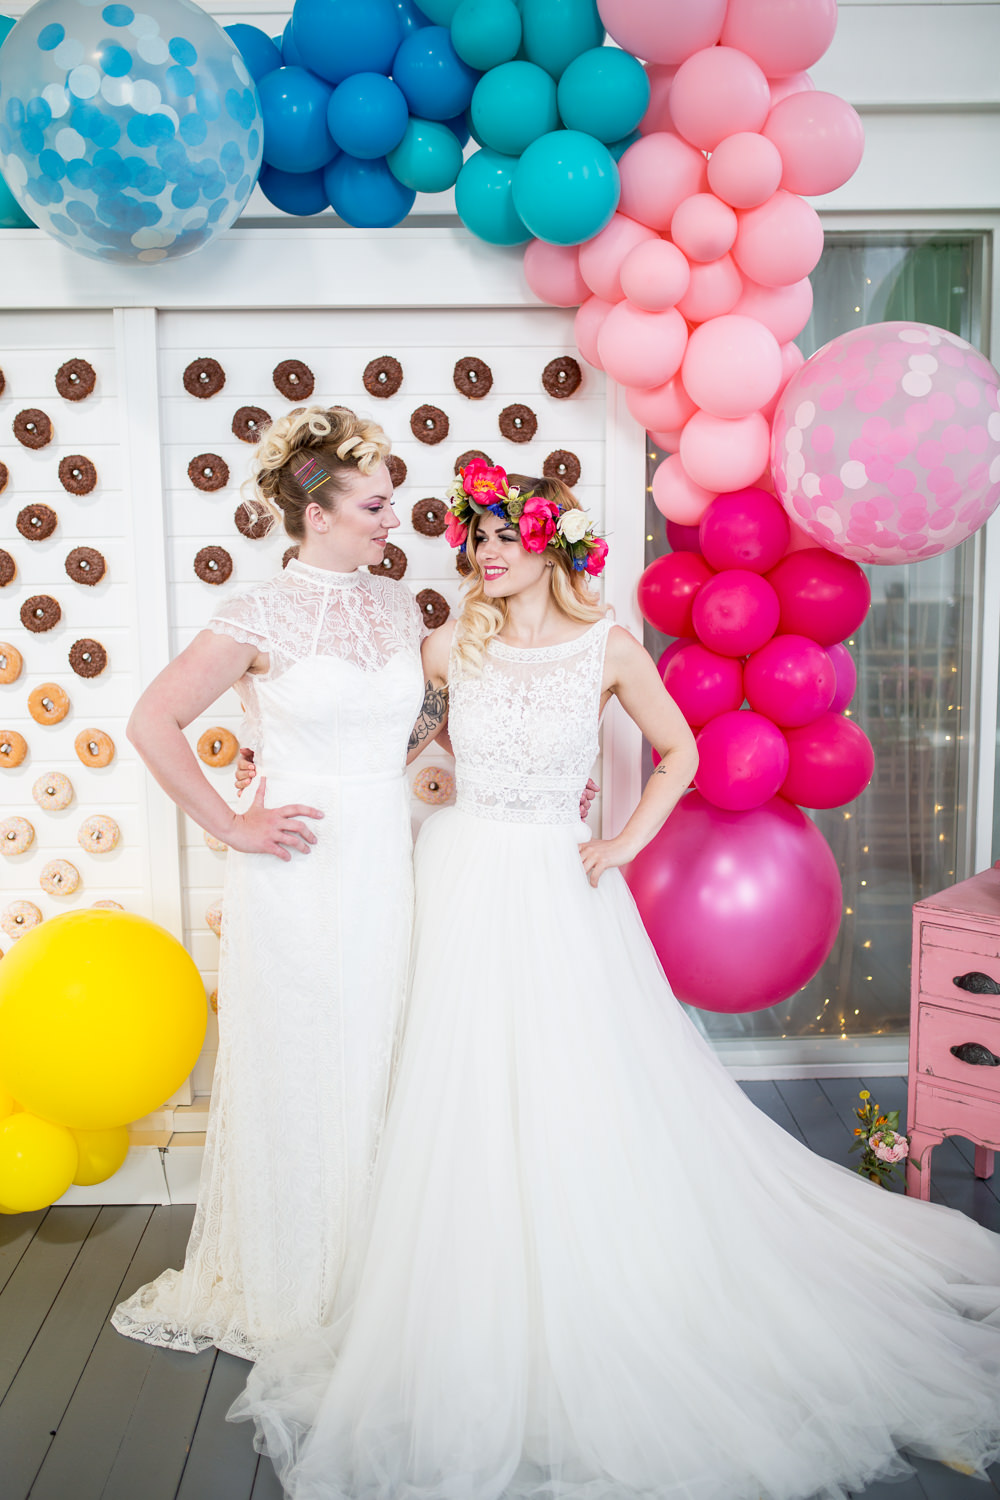 Balloon Installation Backdrop Decor Decoration Colourful Balloons Wedding Ideas Florence Berry Photography